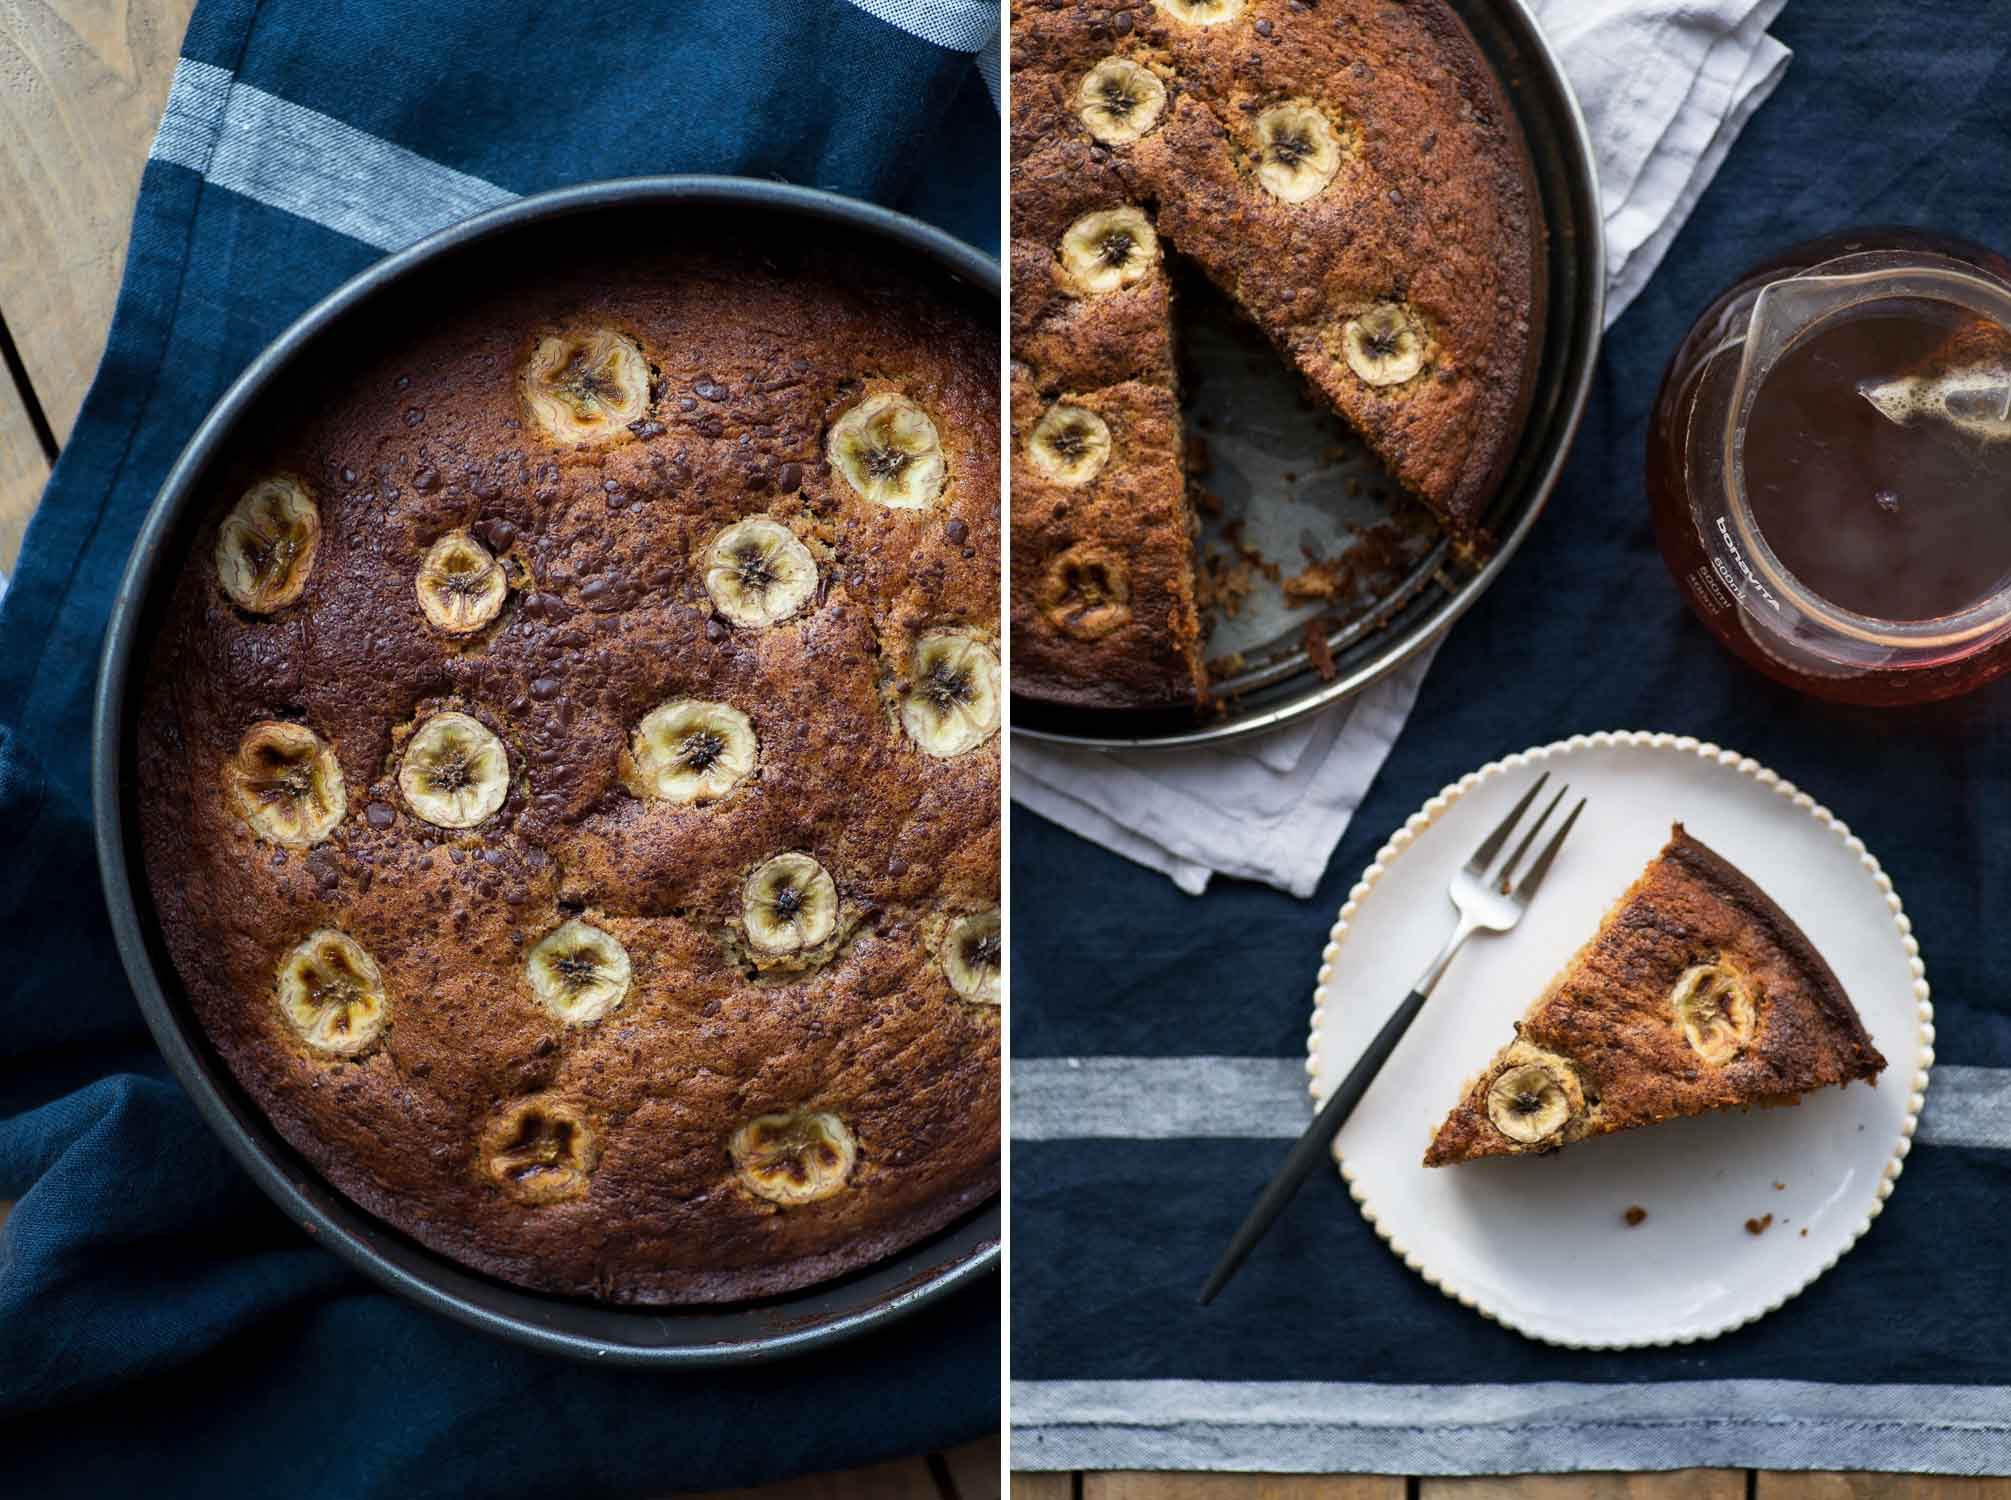 Easy Banana and Medjool Date Cake from Palestine on a Plate Cookbook by Joudie Kalla.